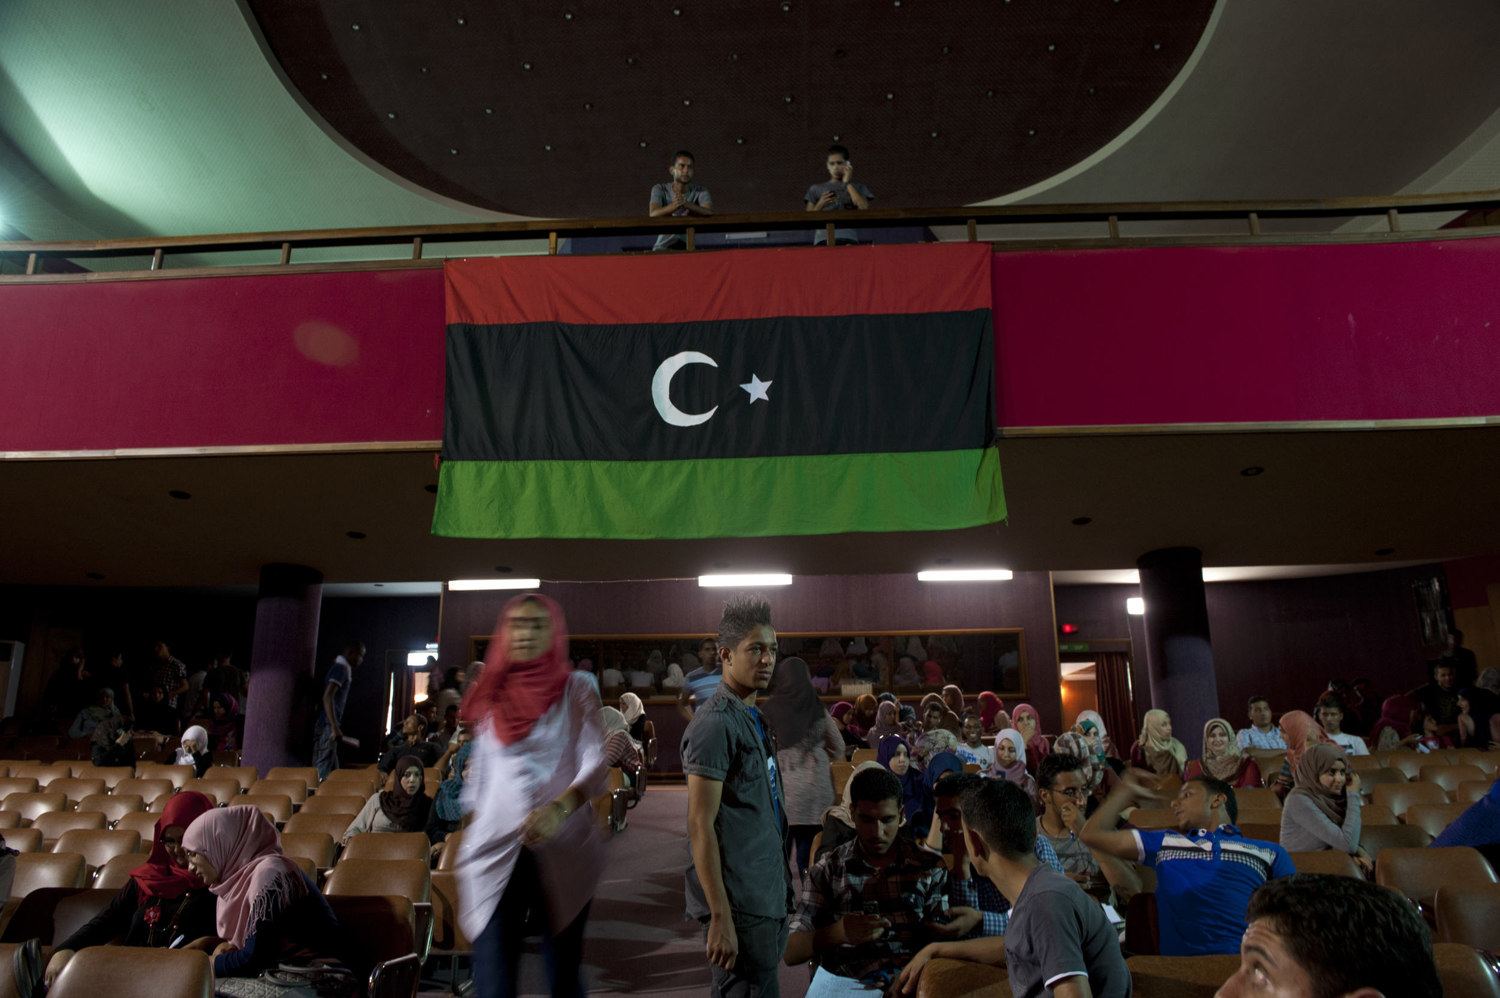 Students at Tripoli University attend a meeting of the elected Student Council on July 12th 2012.